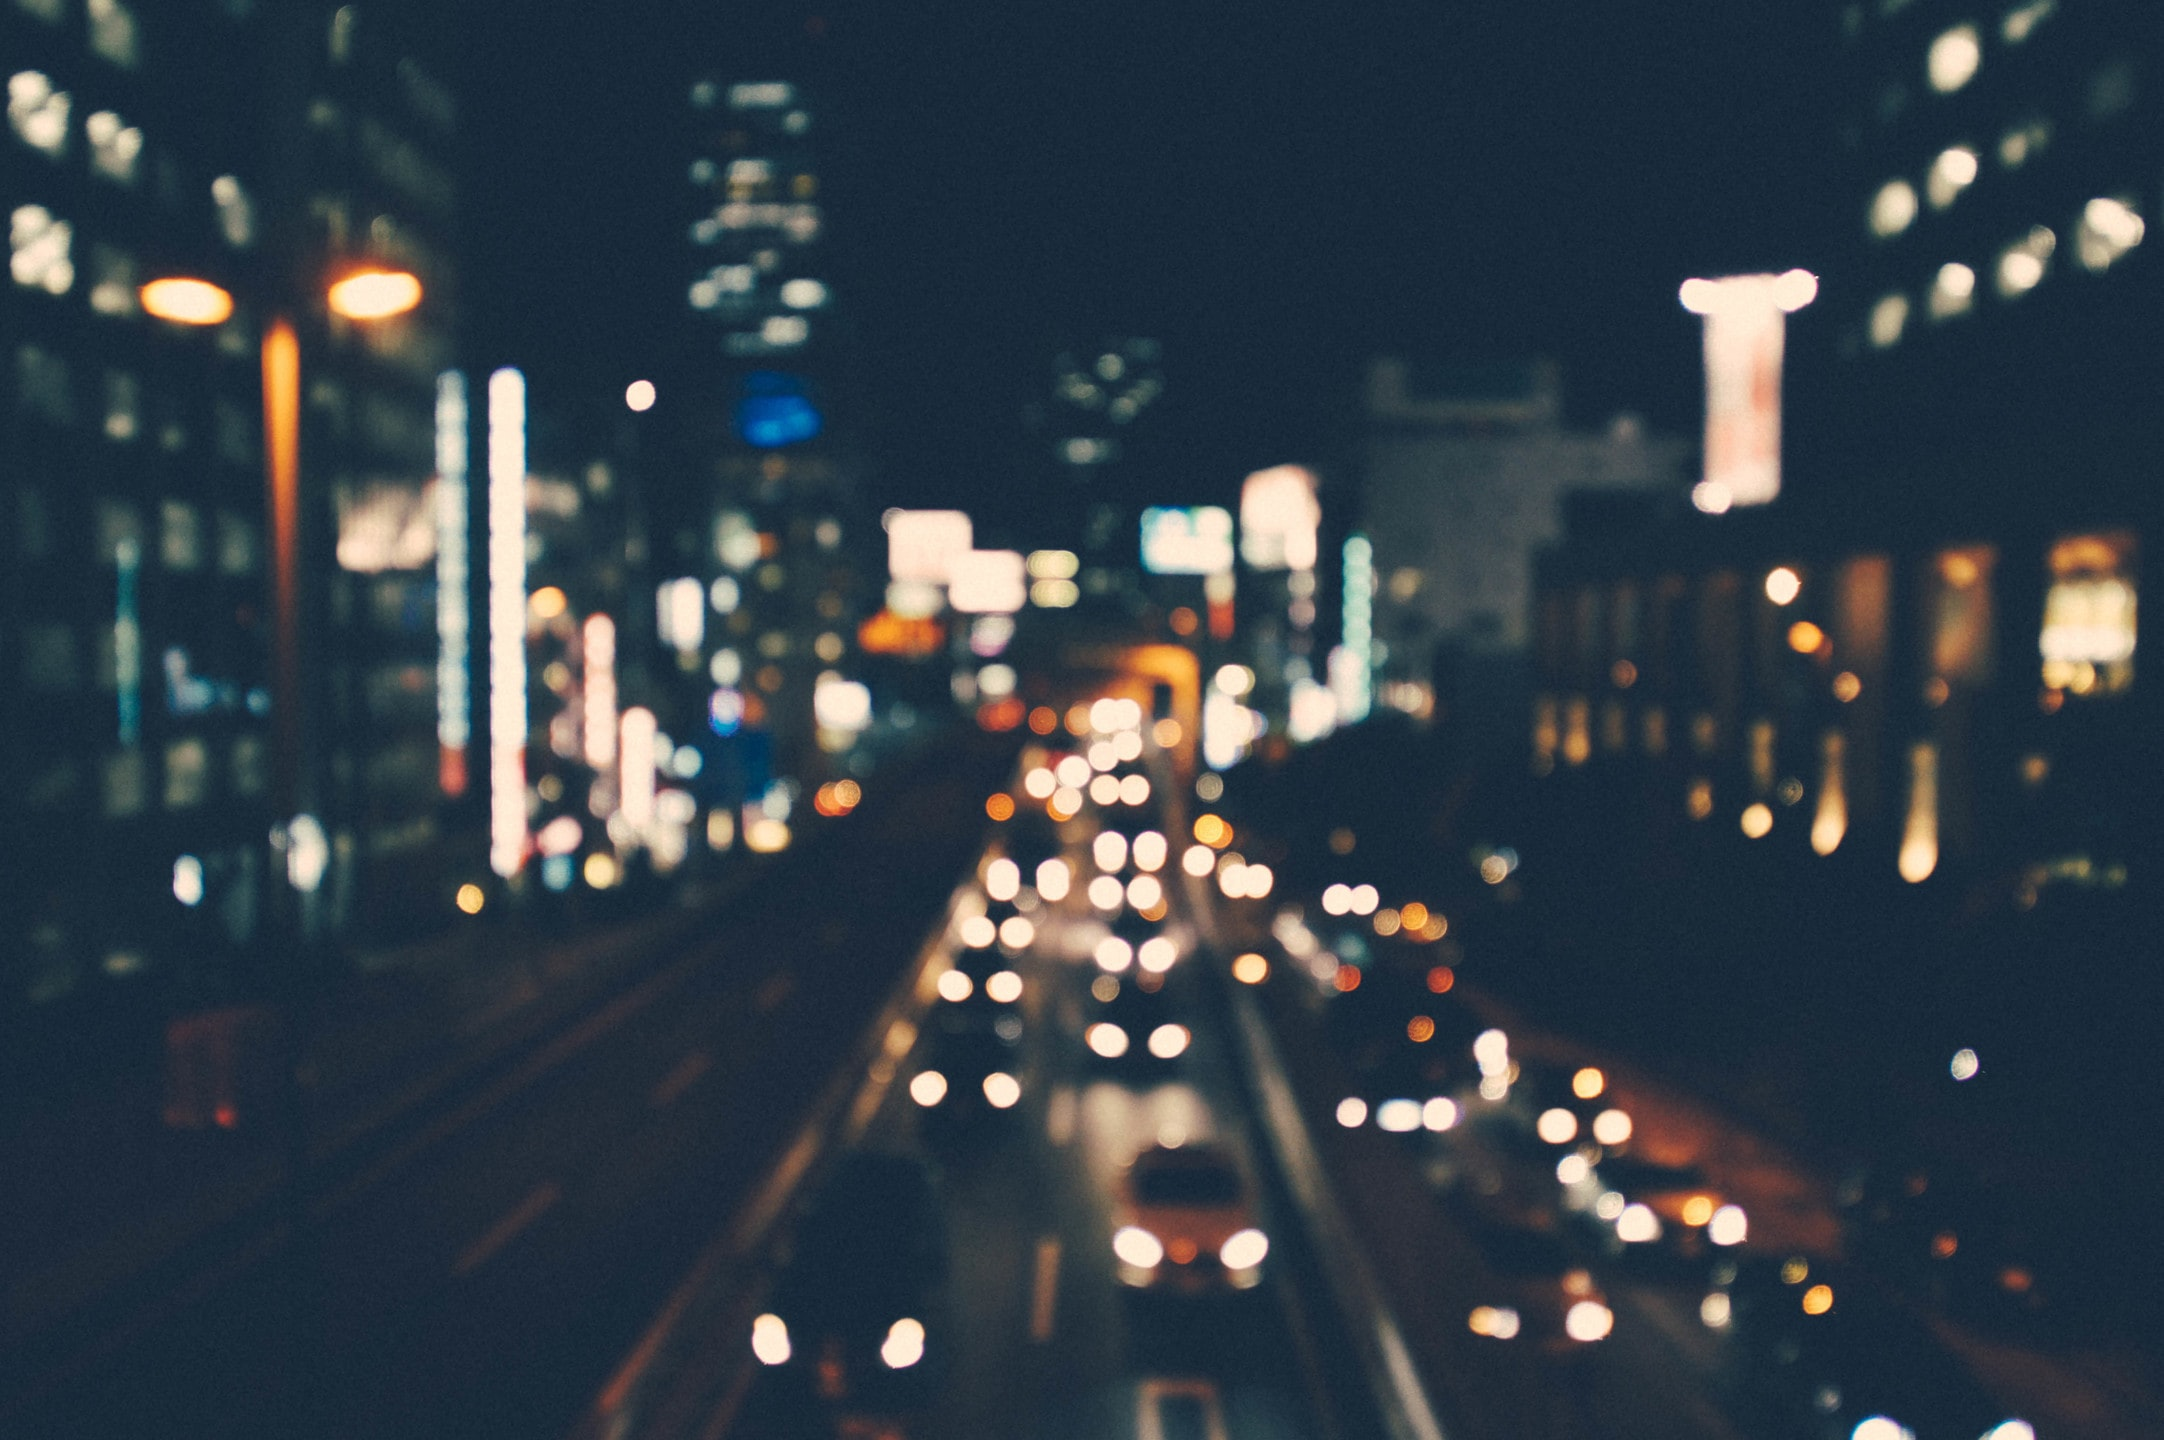 A blurry shot of a city street lit up by buildings and cars at night